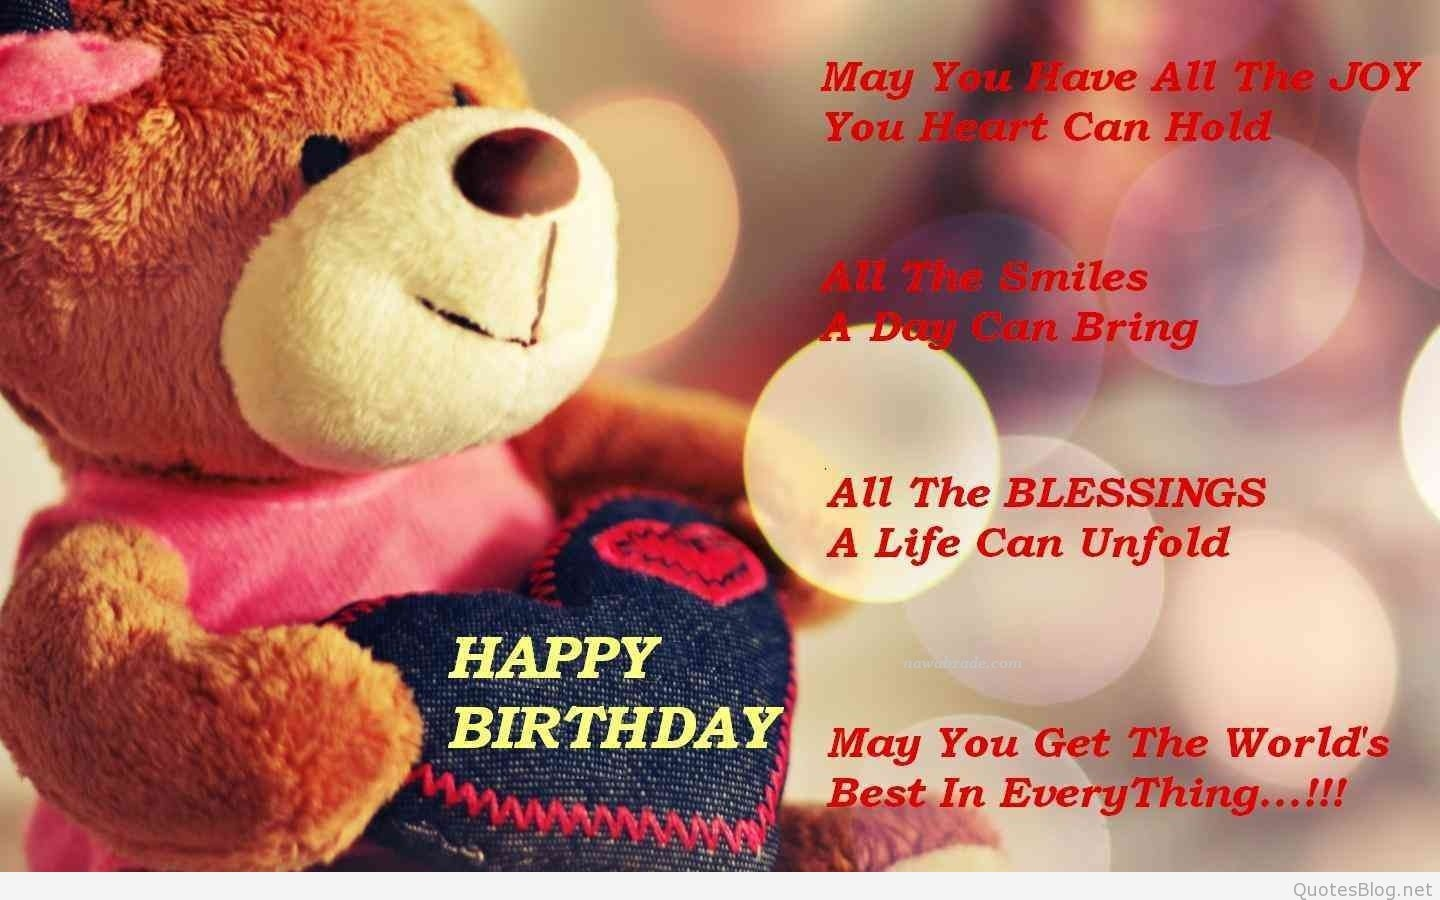 happy birthday wishes for friend wallpaper ; new-birthday-wishes-for-best-friend-within-wishing-best-friend-happy-birthday-quotes-inspiration